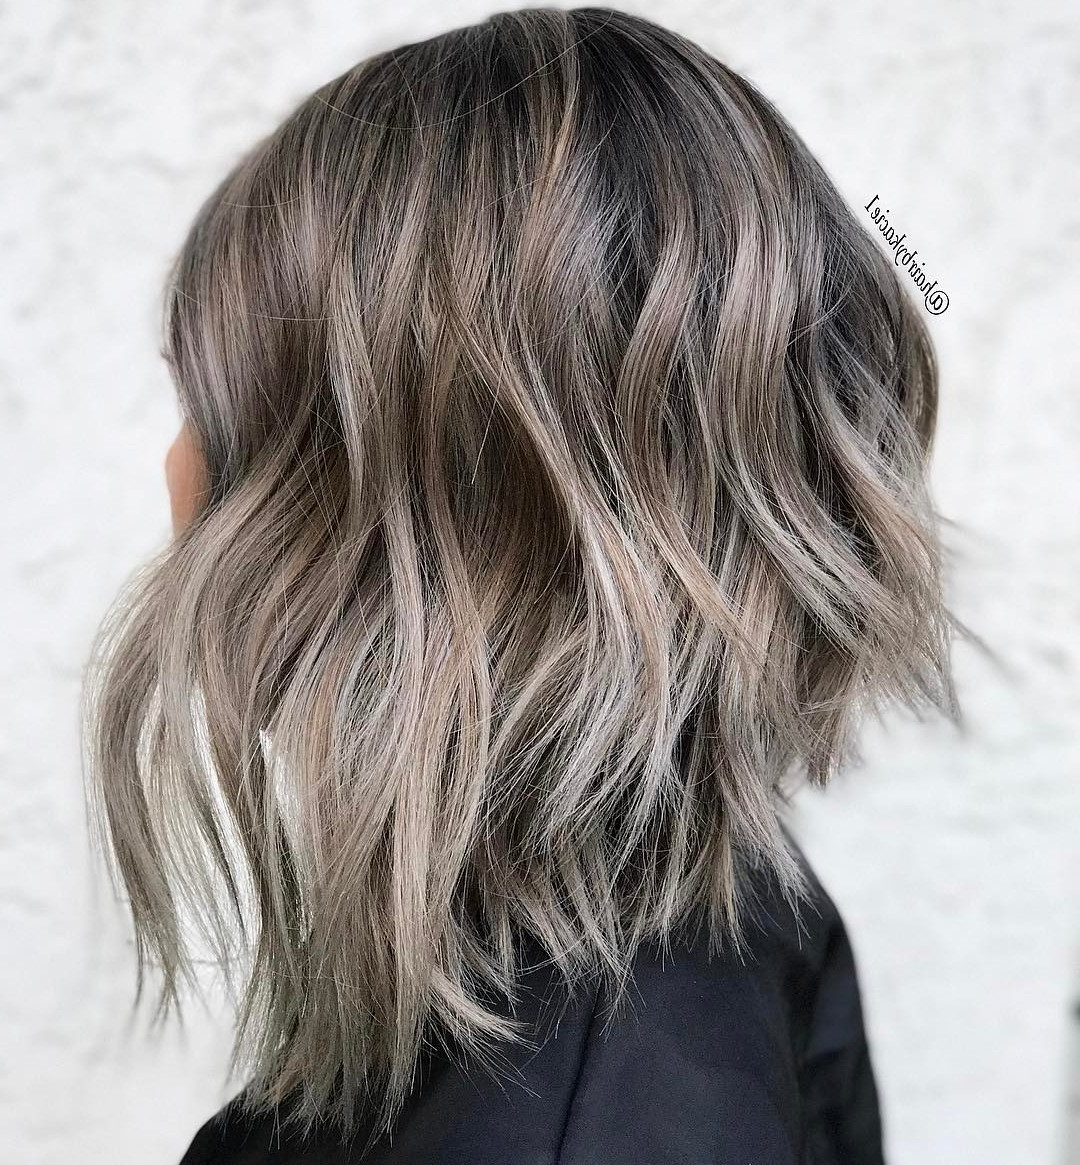 20 Chic Long Inverted Bobs To Inspire Your 2020 Makeover Inside Favorite Long Feathered Bangs Hairstyles With Inverted Bob (View 12 of 20)